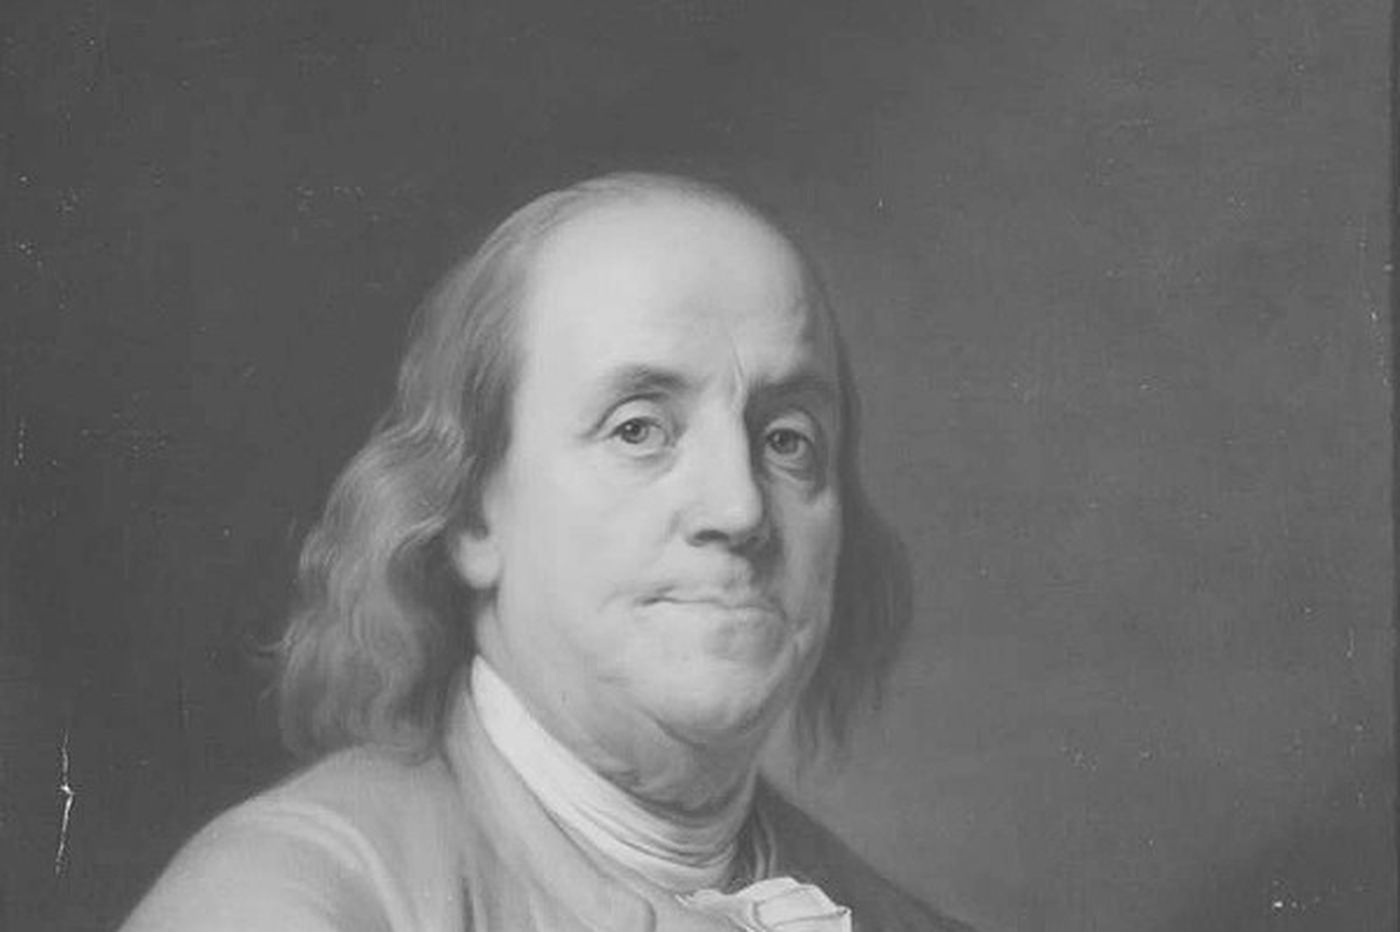 Name airport for the well-traveled Ben Franklin